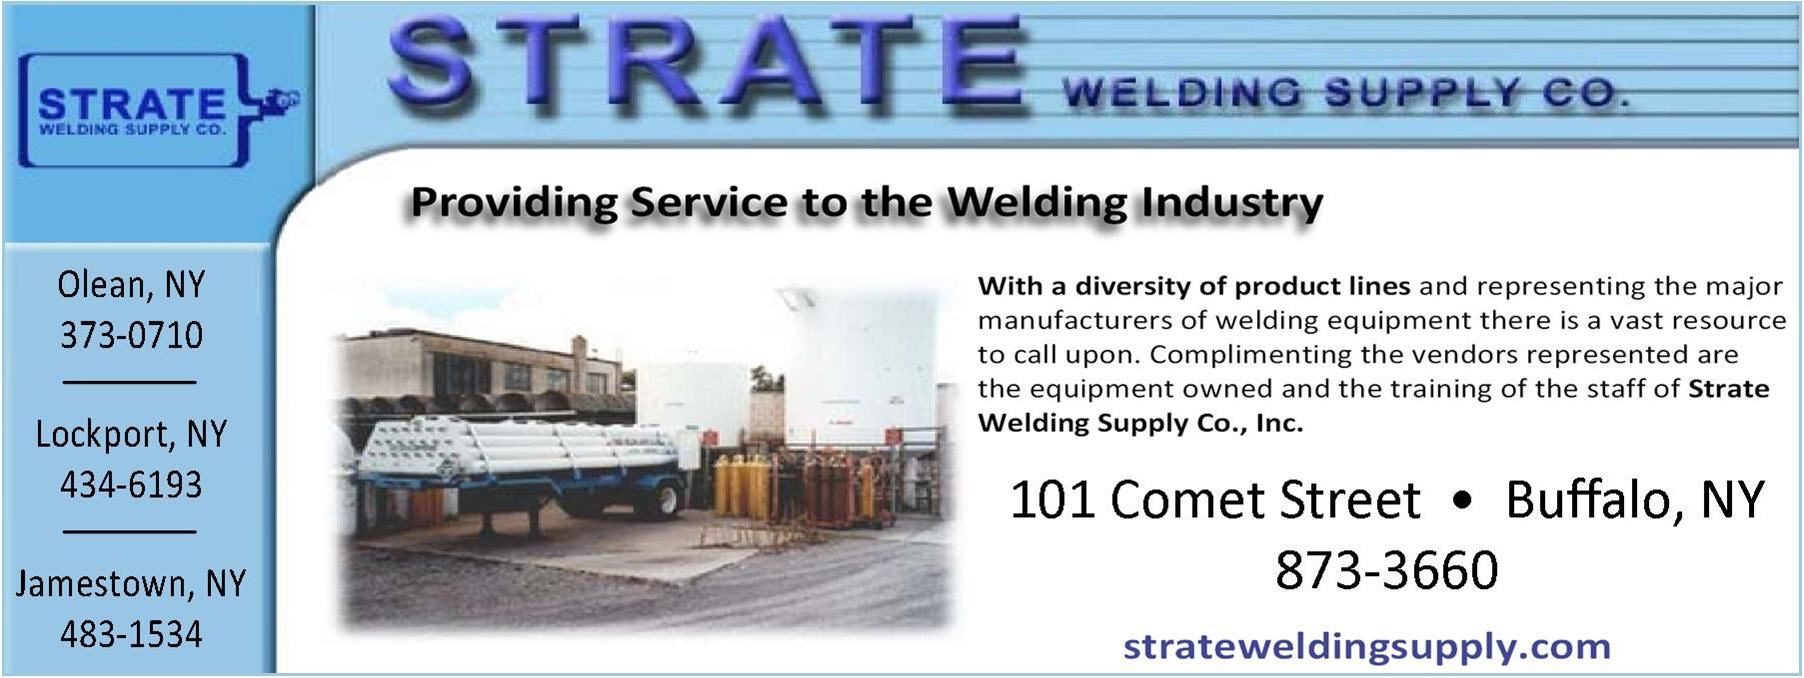 Strate Welding Supply